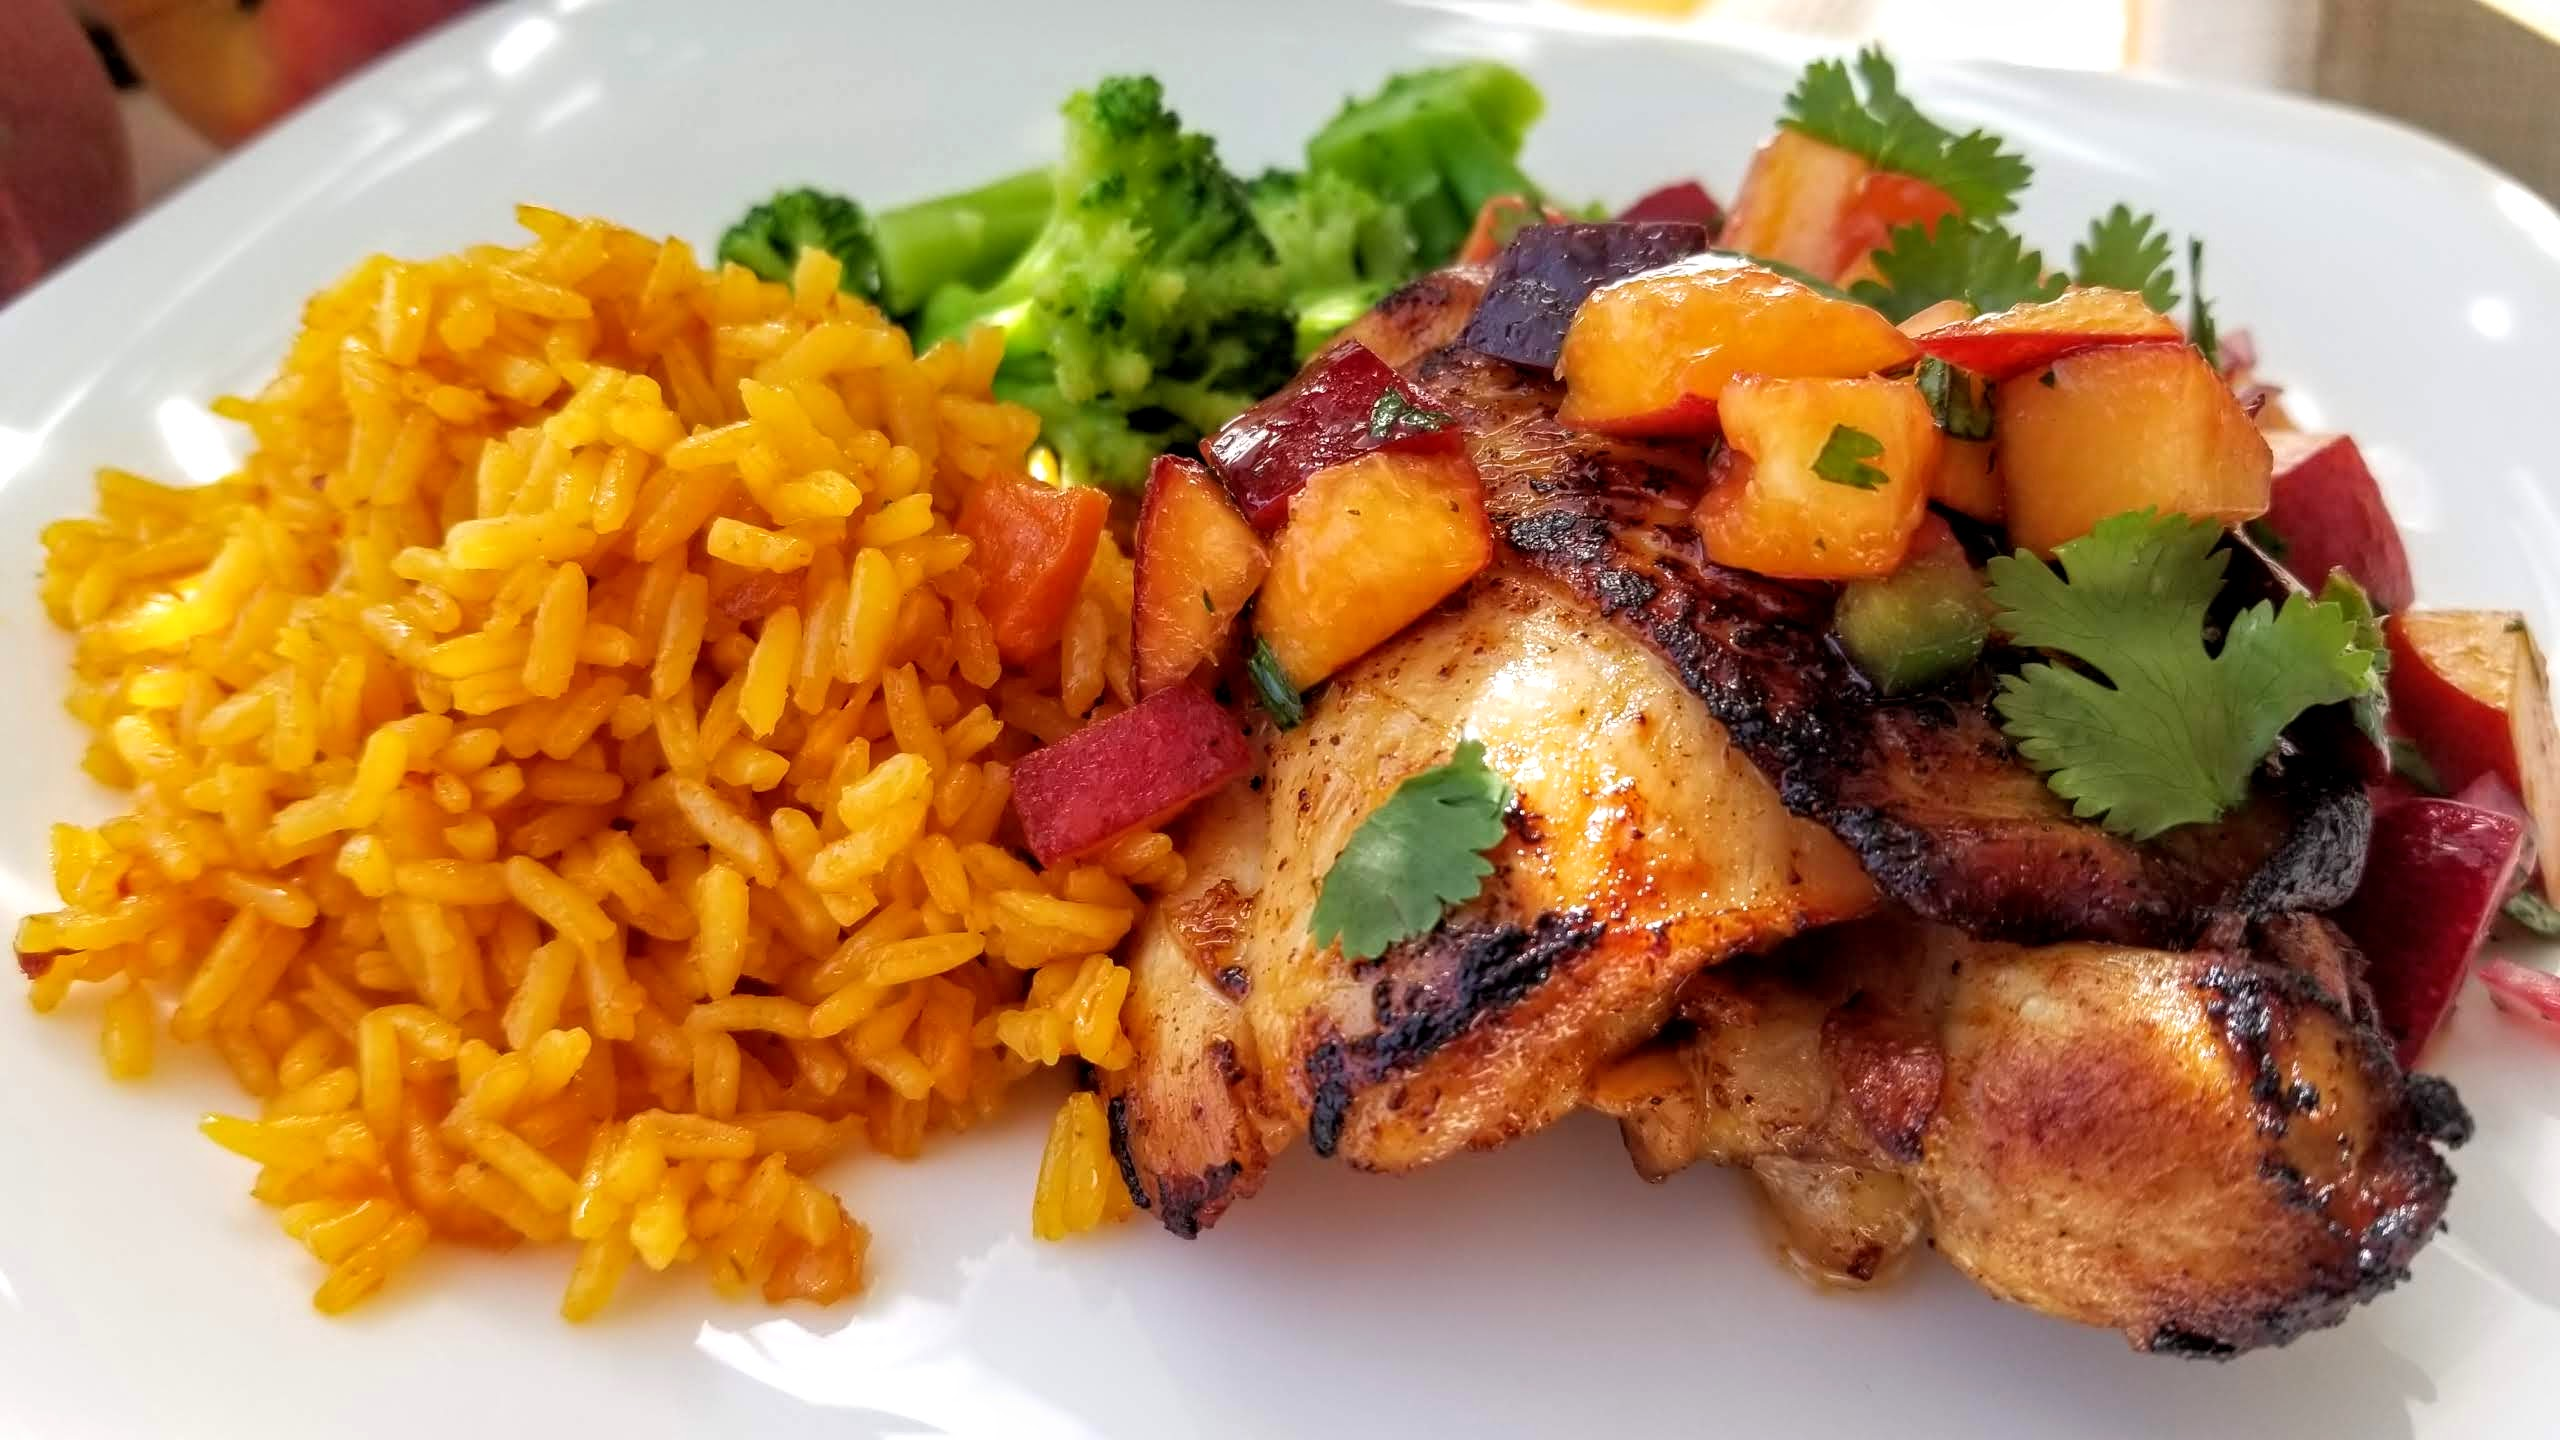 Grilled Chicken Thighs with Peach and Cherry Salsa Tony Rosa